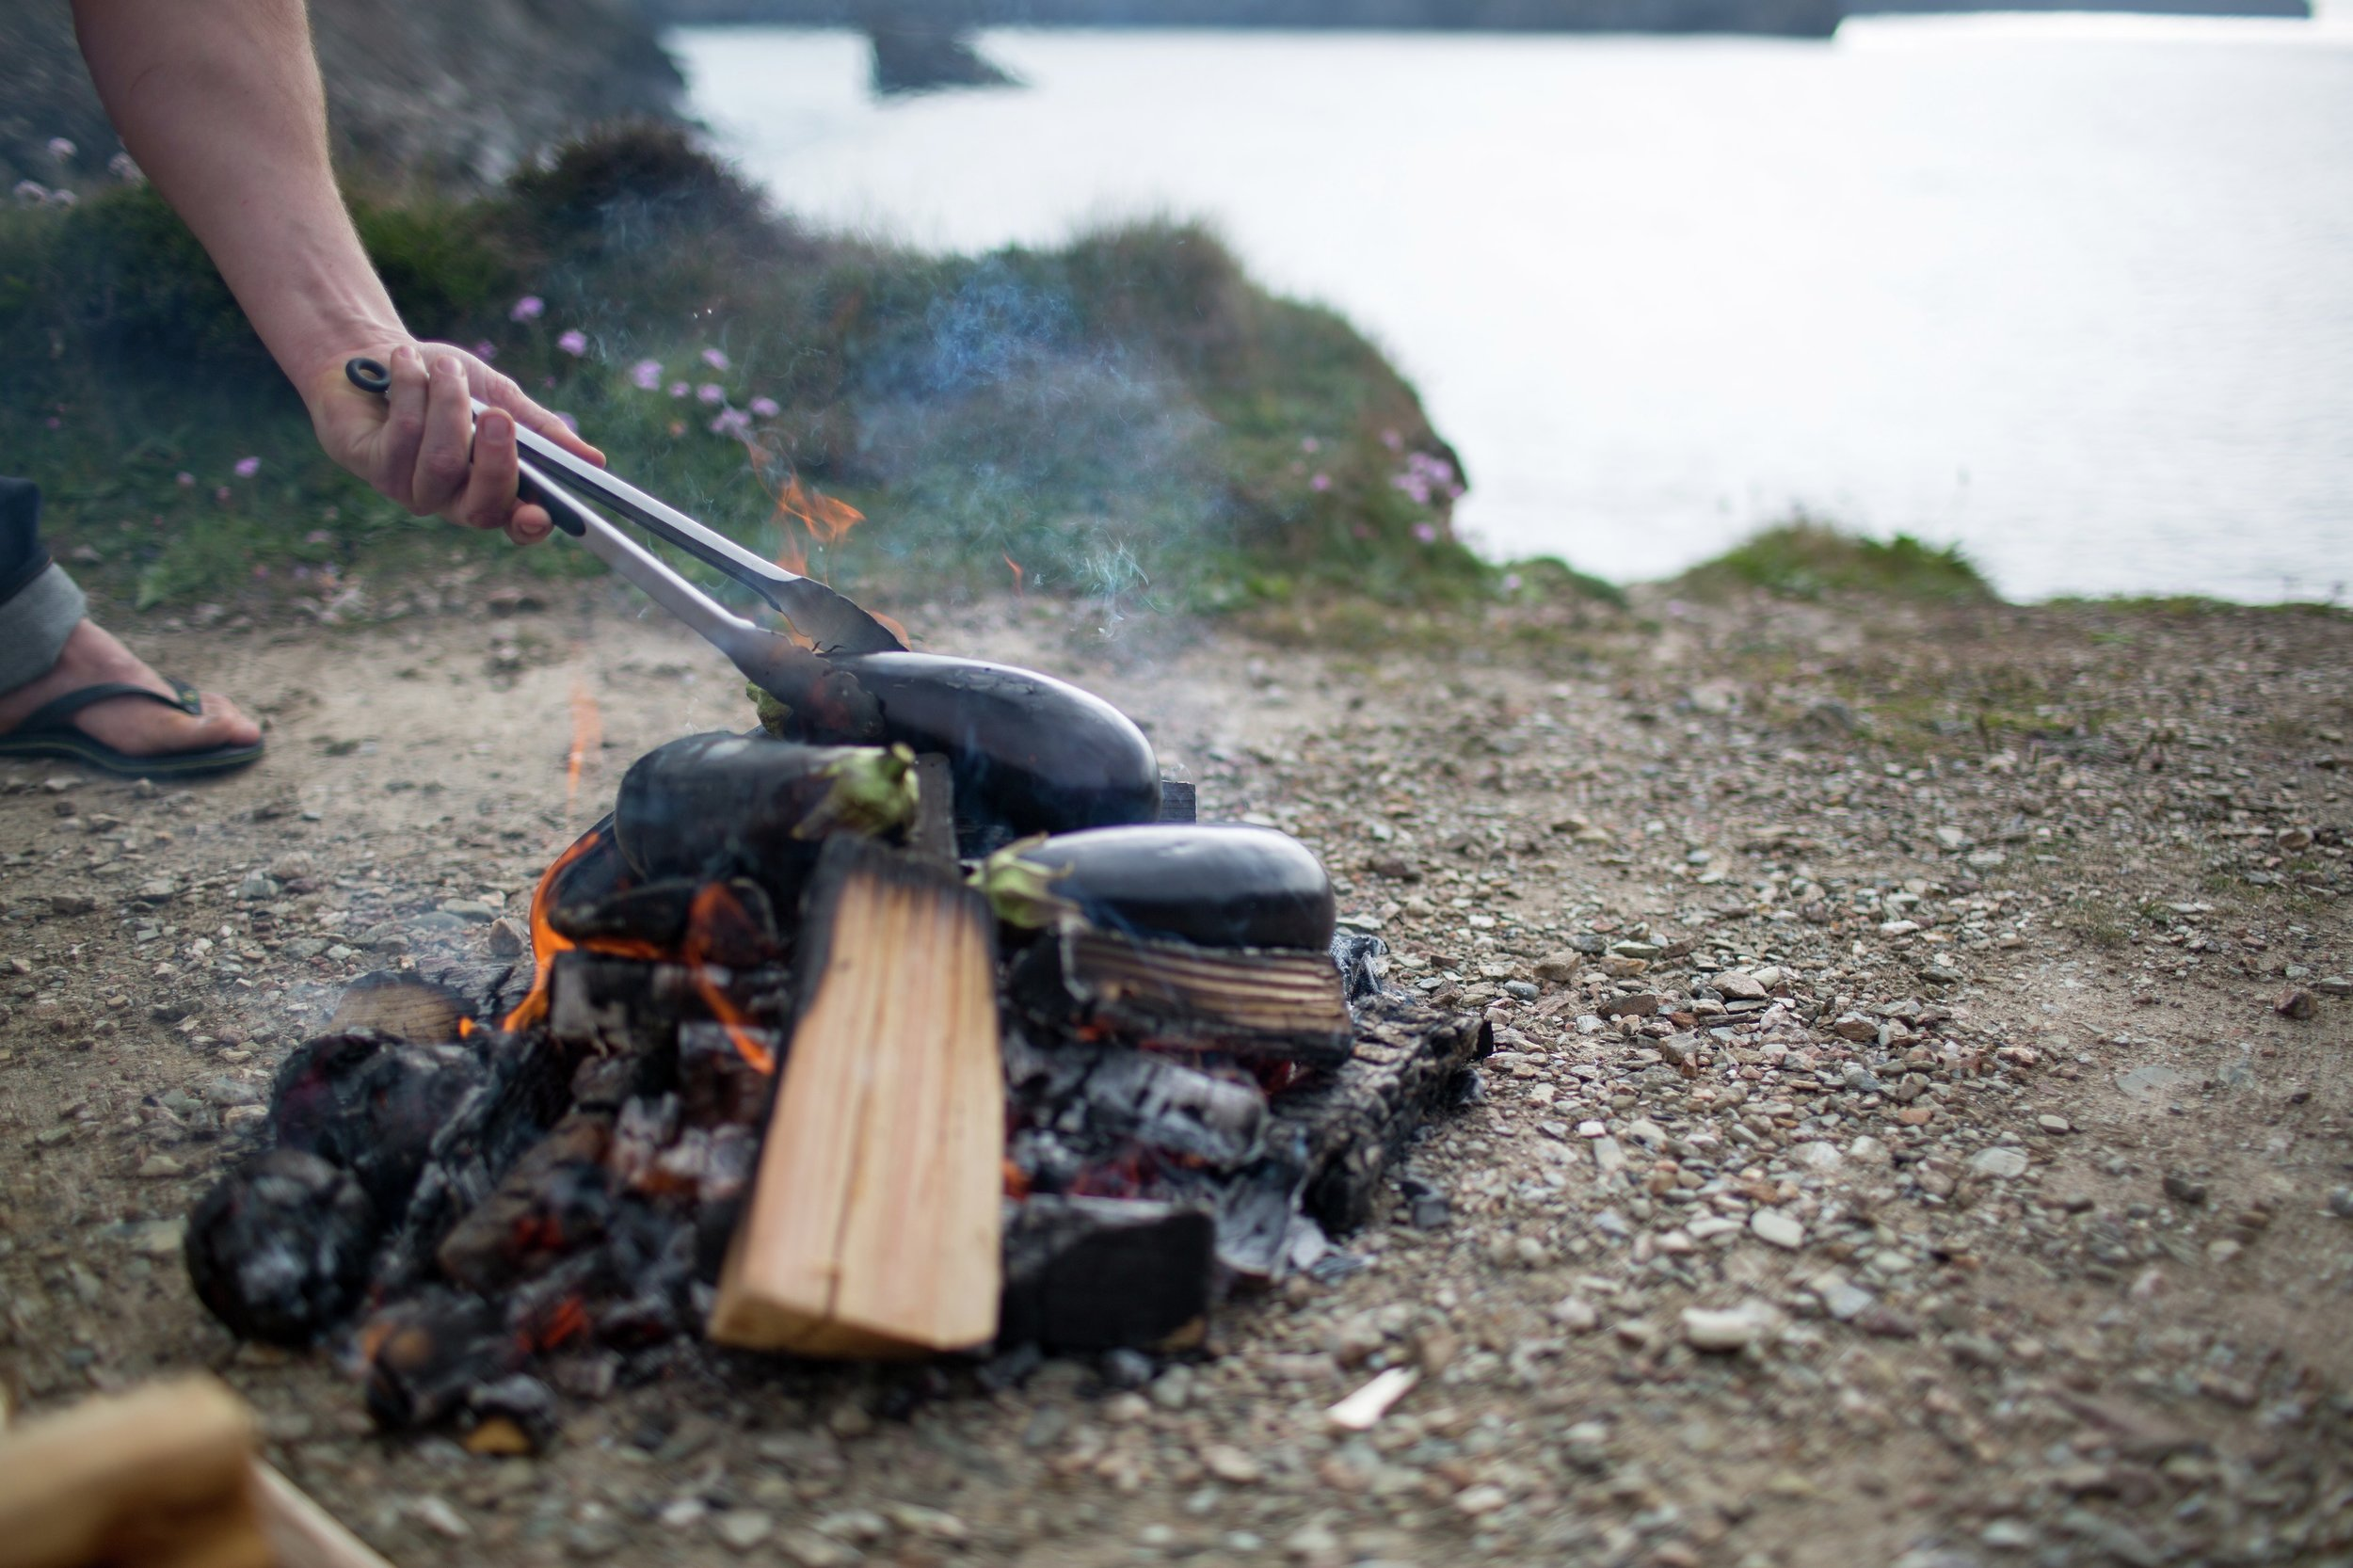 Source: Woodfired Canteen